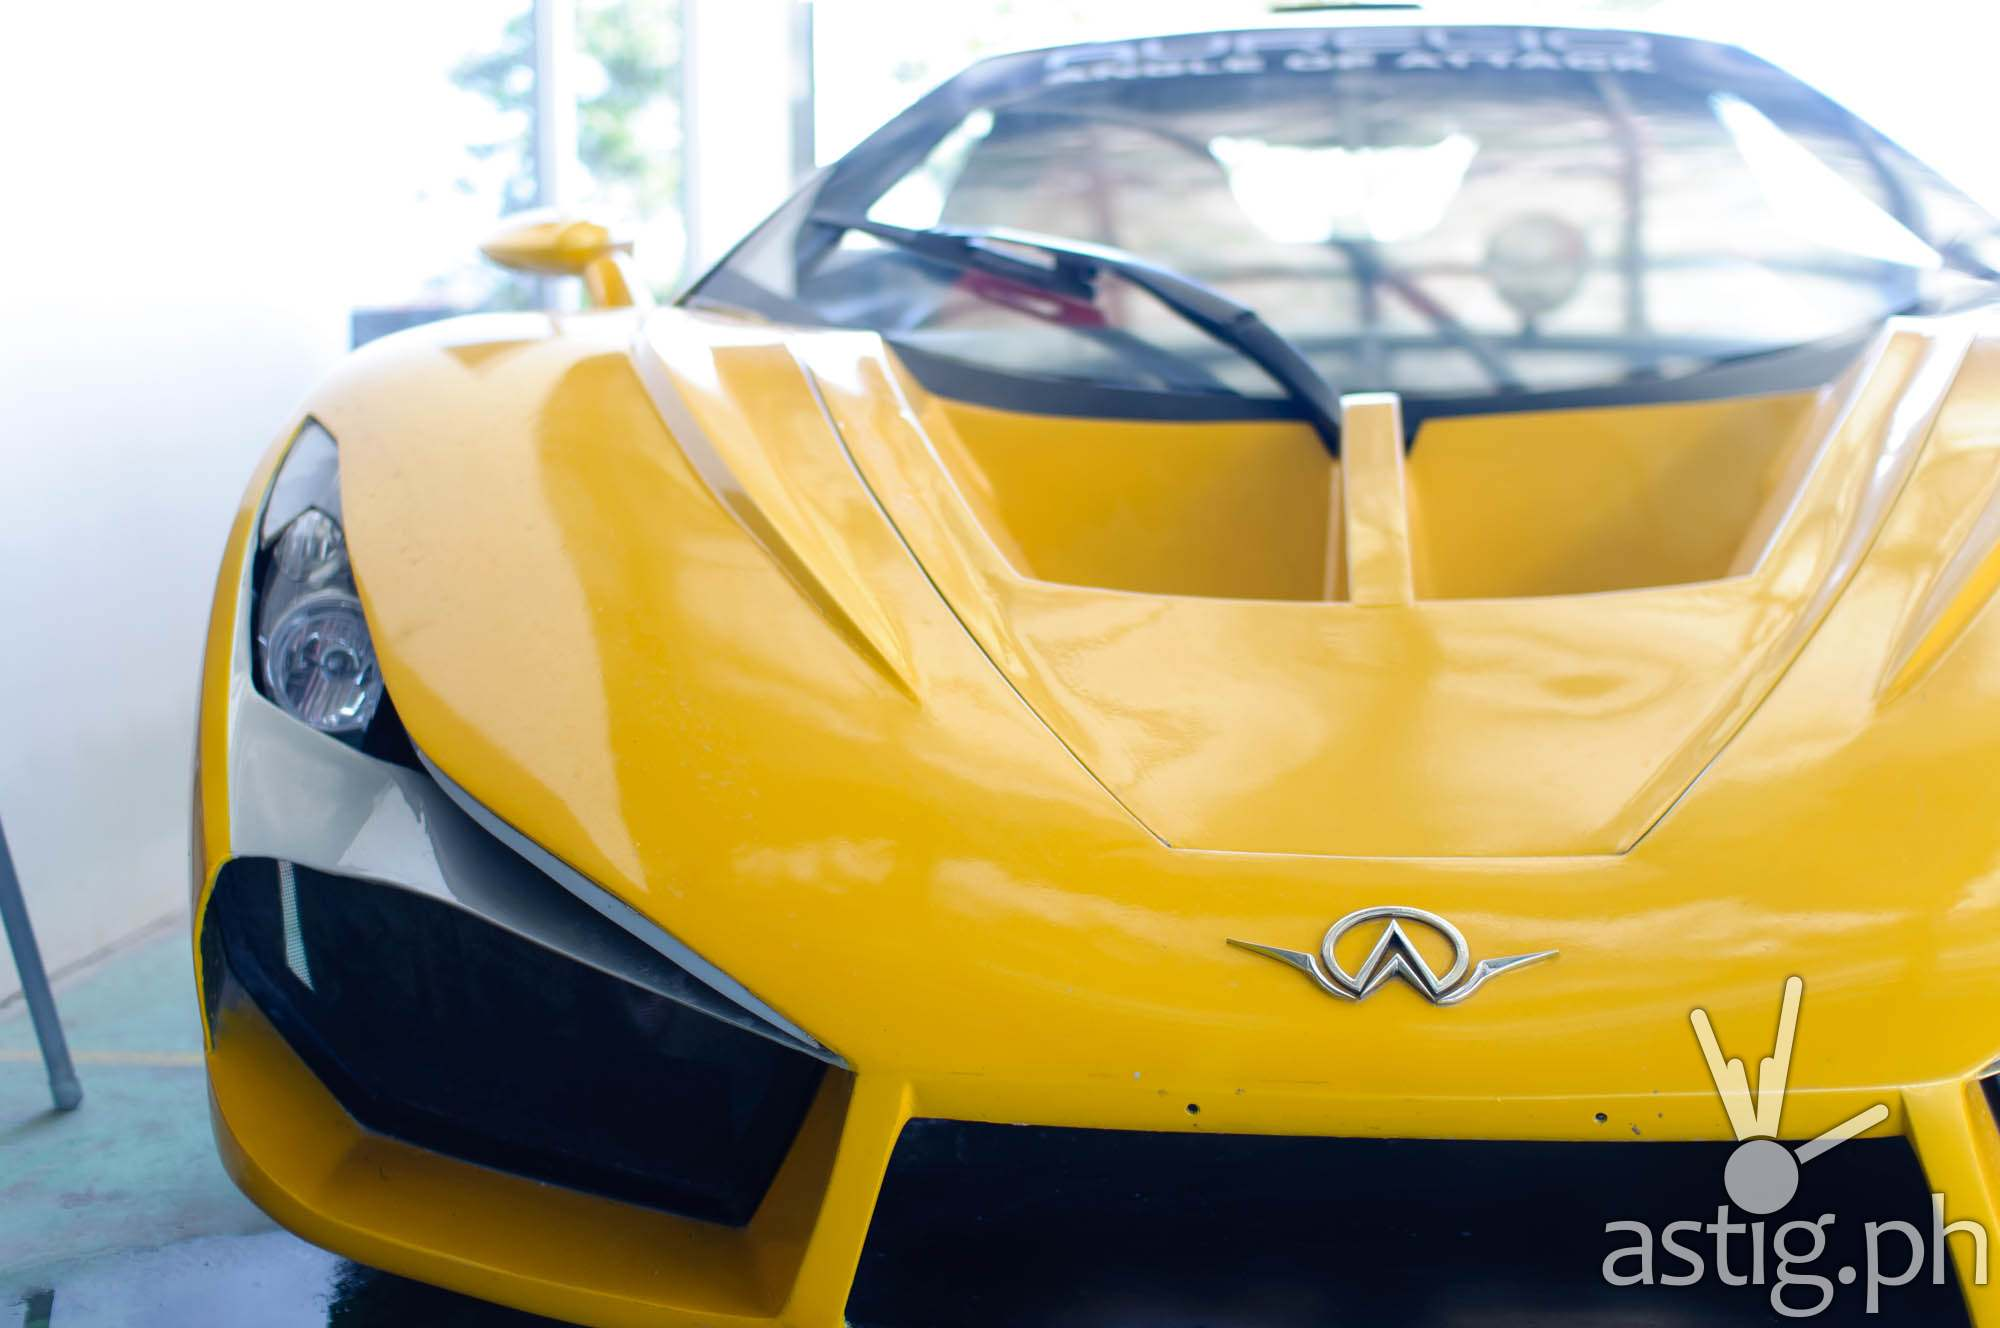 Aurelio Supercar: Philippines' diamond in the rough | ASTIG.PH